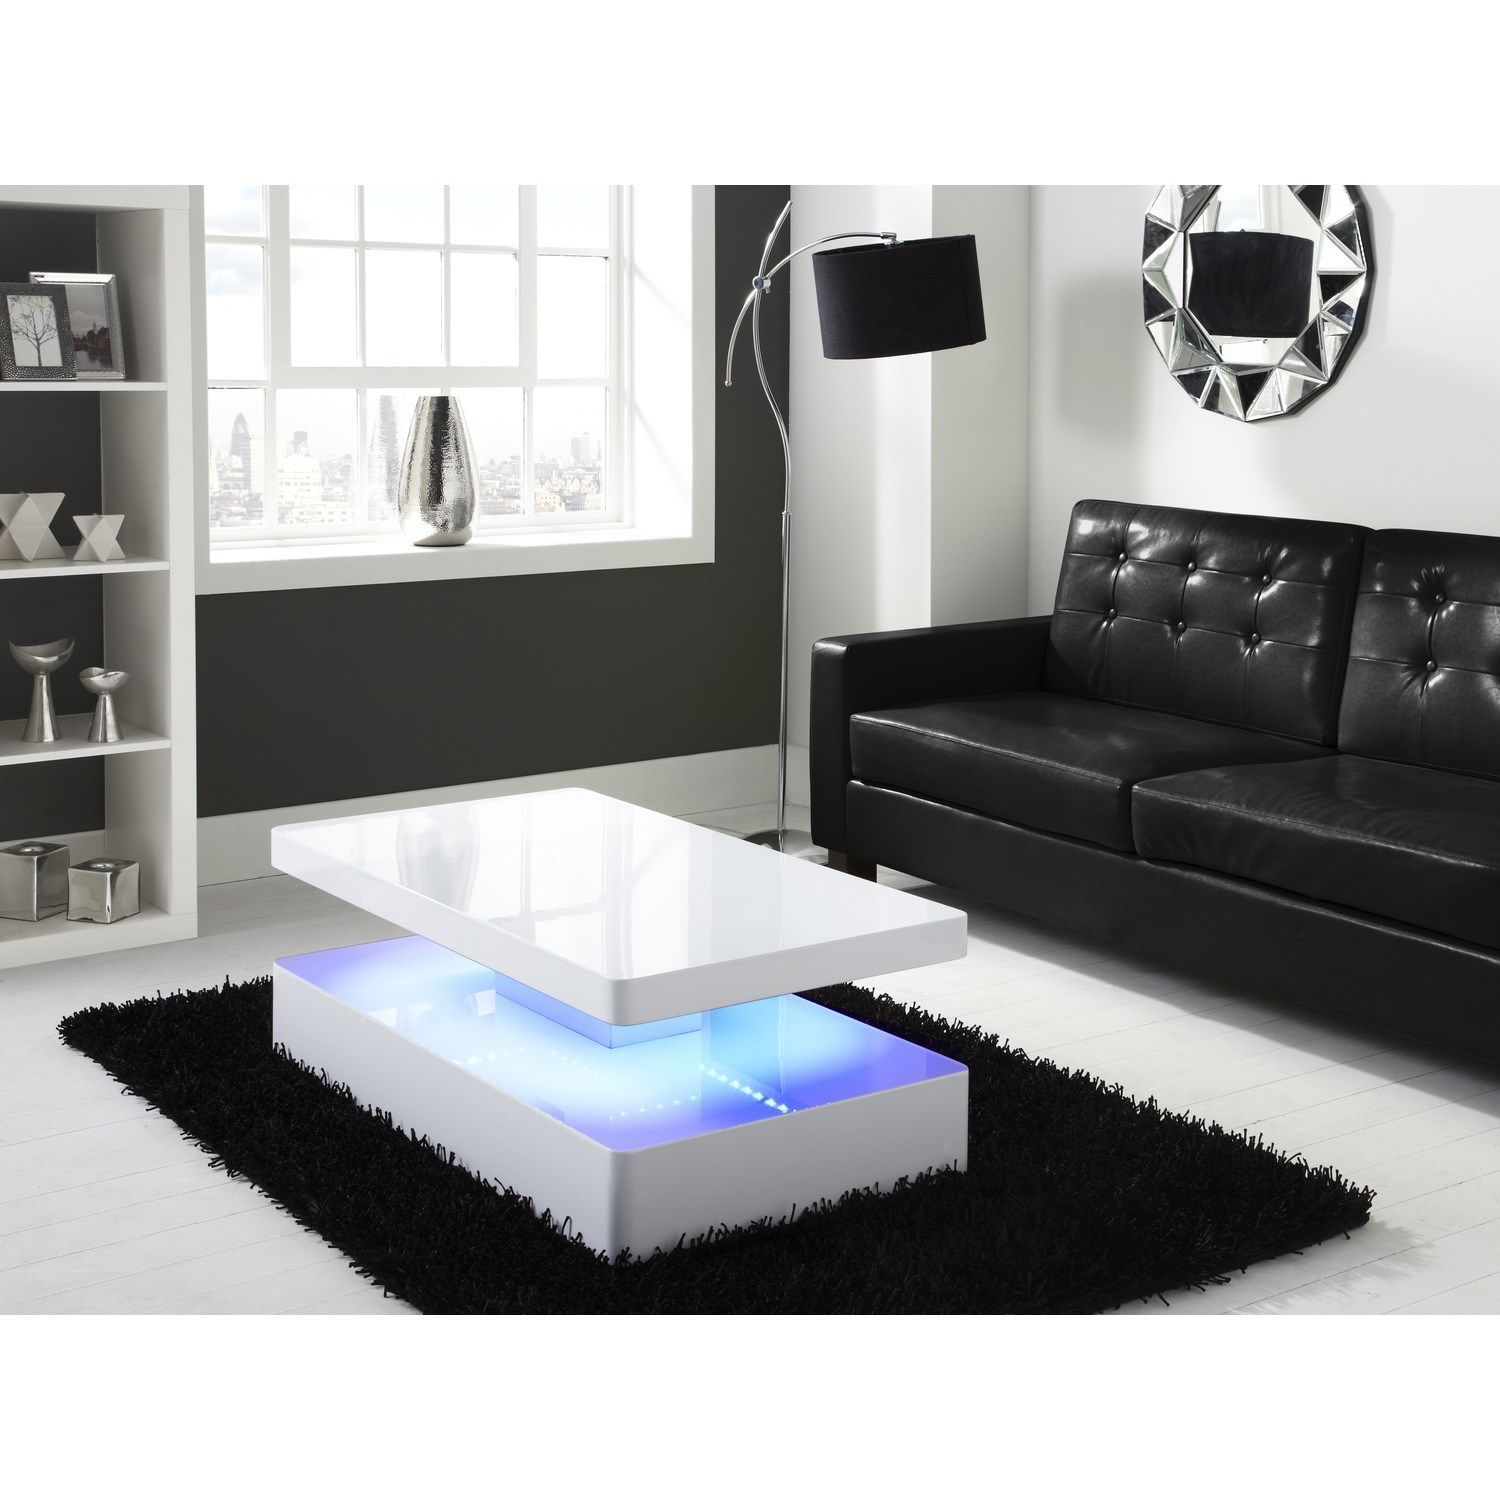 Unique Coffee Table Design Ideas Coffee Table Design Over Is A Very Remarkable And Modern D Coffee Table White Furniture Living Room Contemporary Coffee Table [ 1500 x 1500 Pixel ]